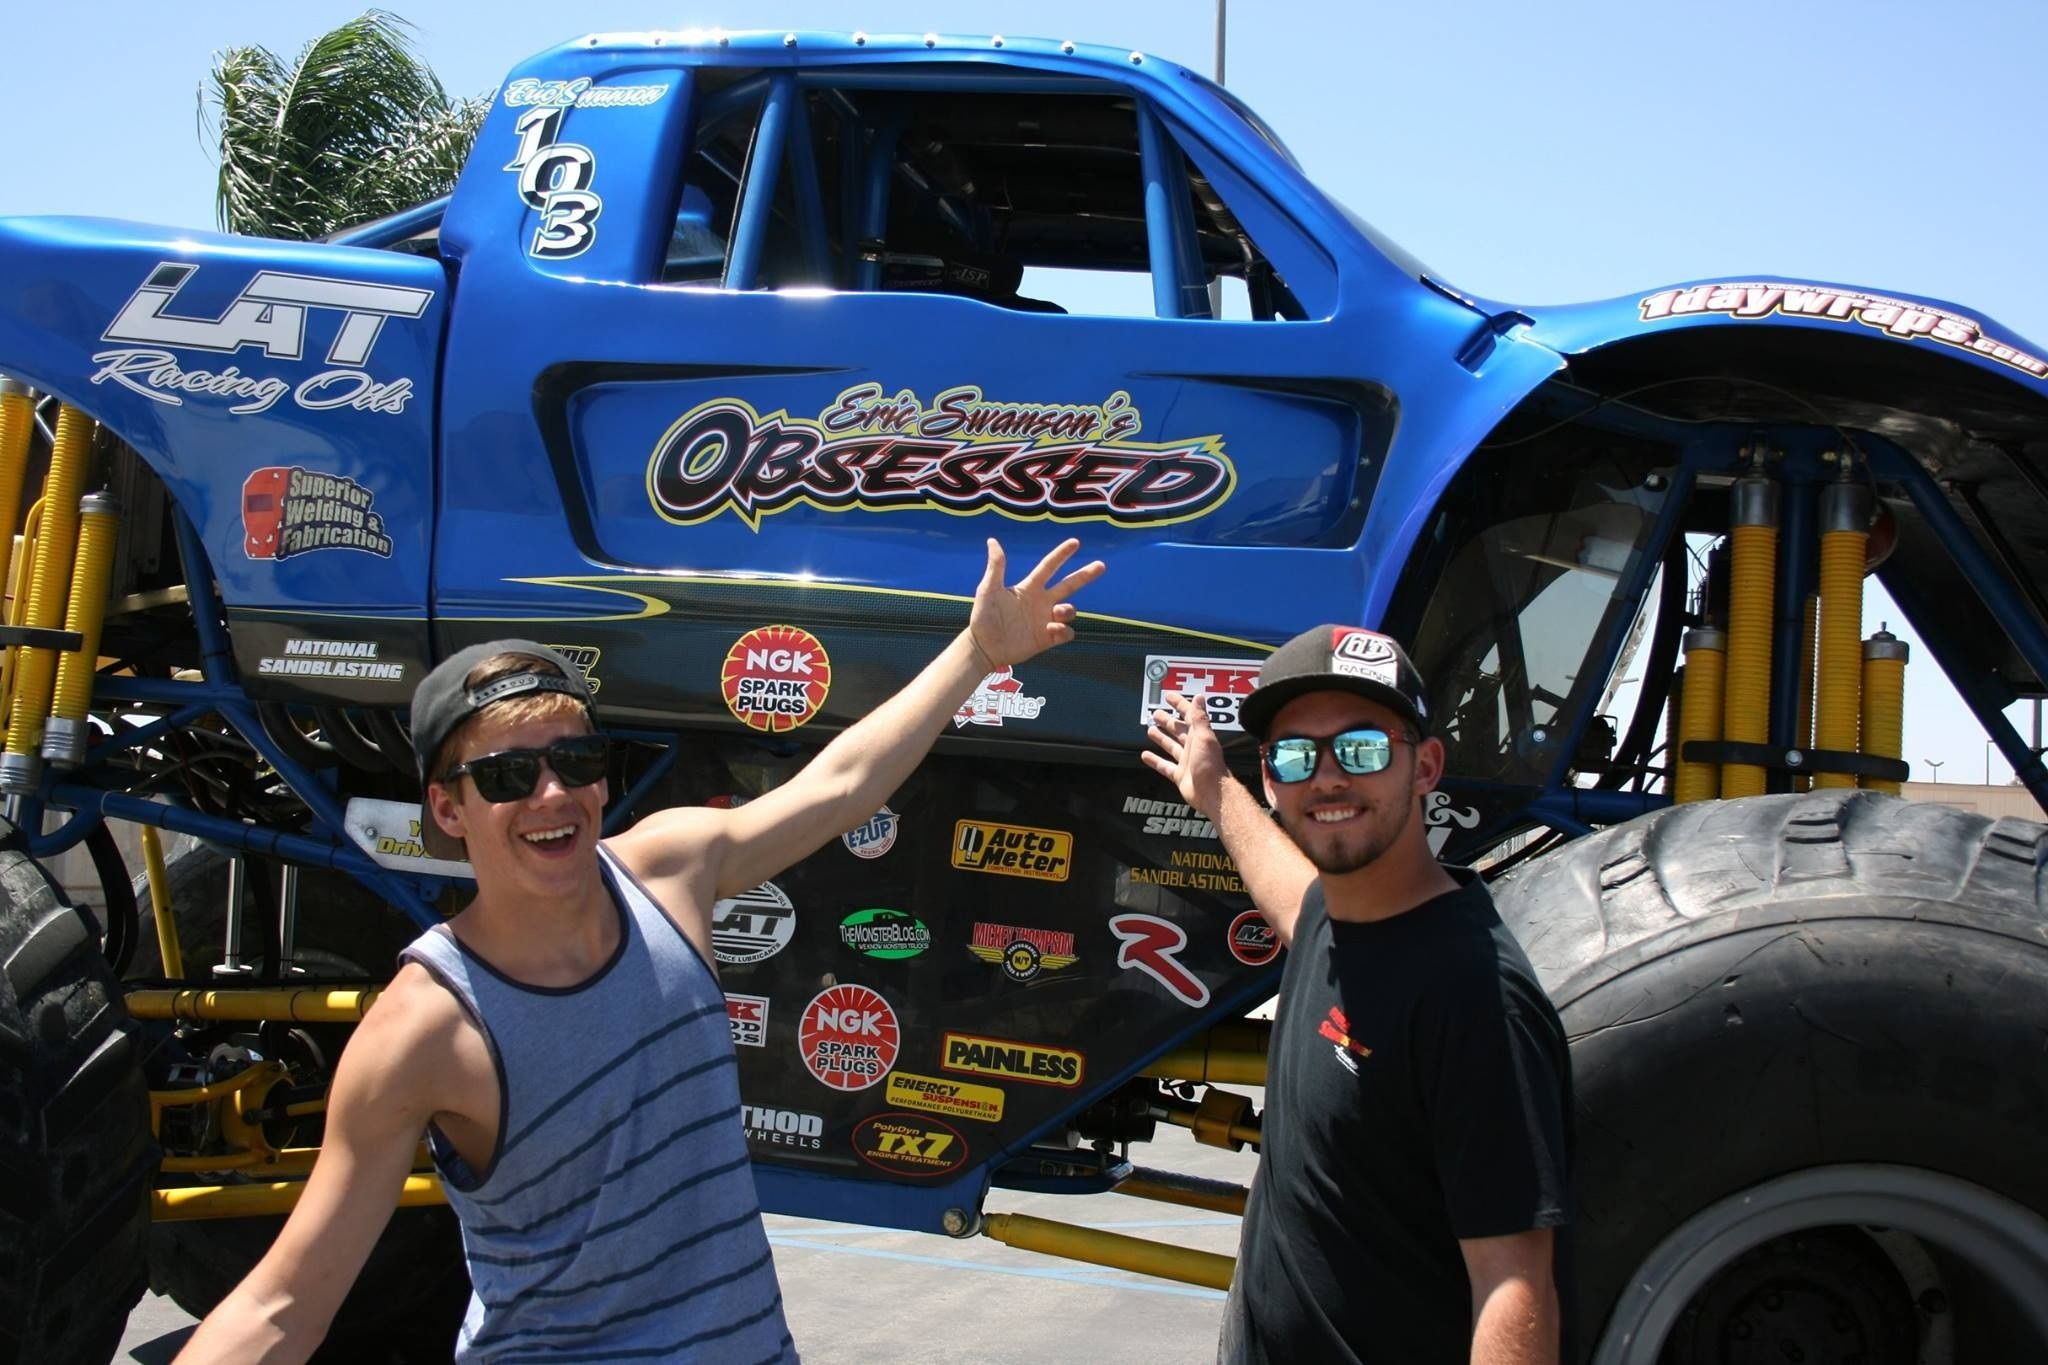 Team rider eric swanson jason posing next to his monster truck obsessed